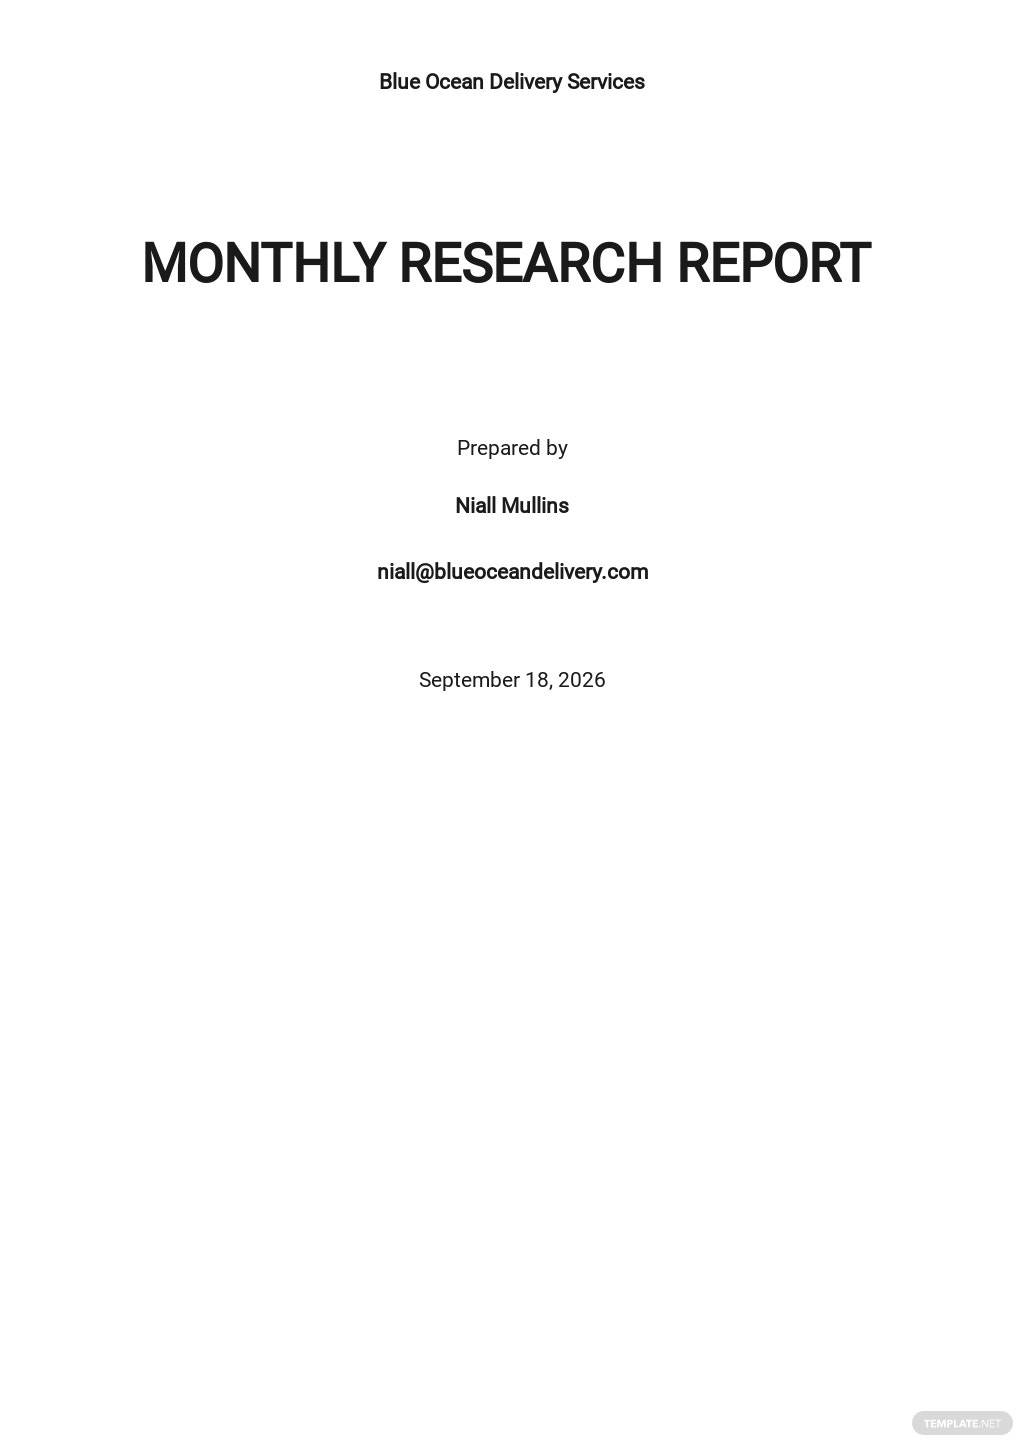 Monthly Research Report Template.jpe